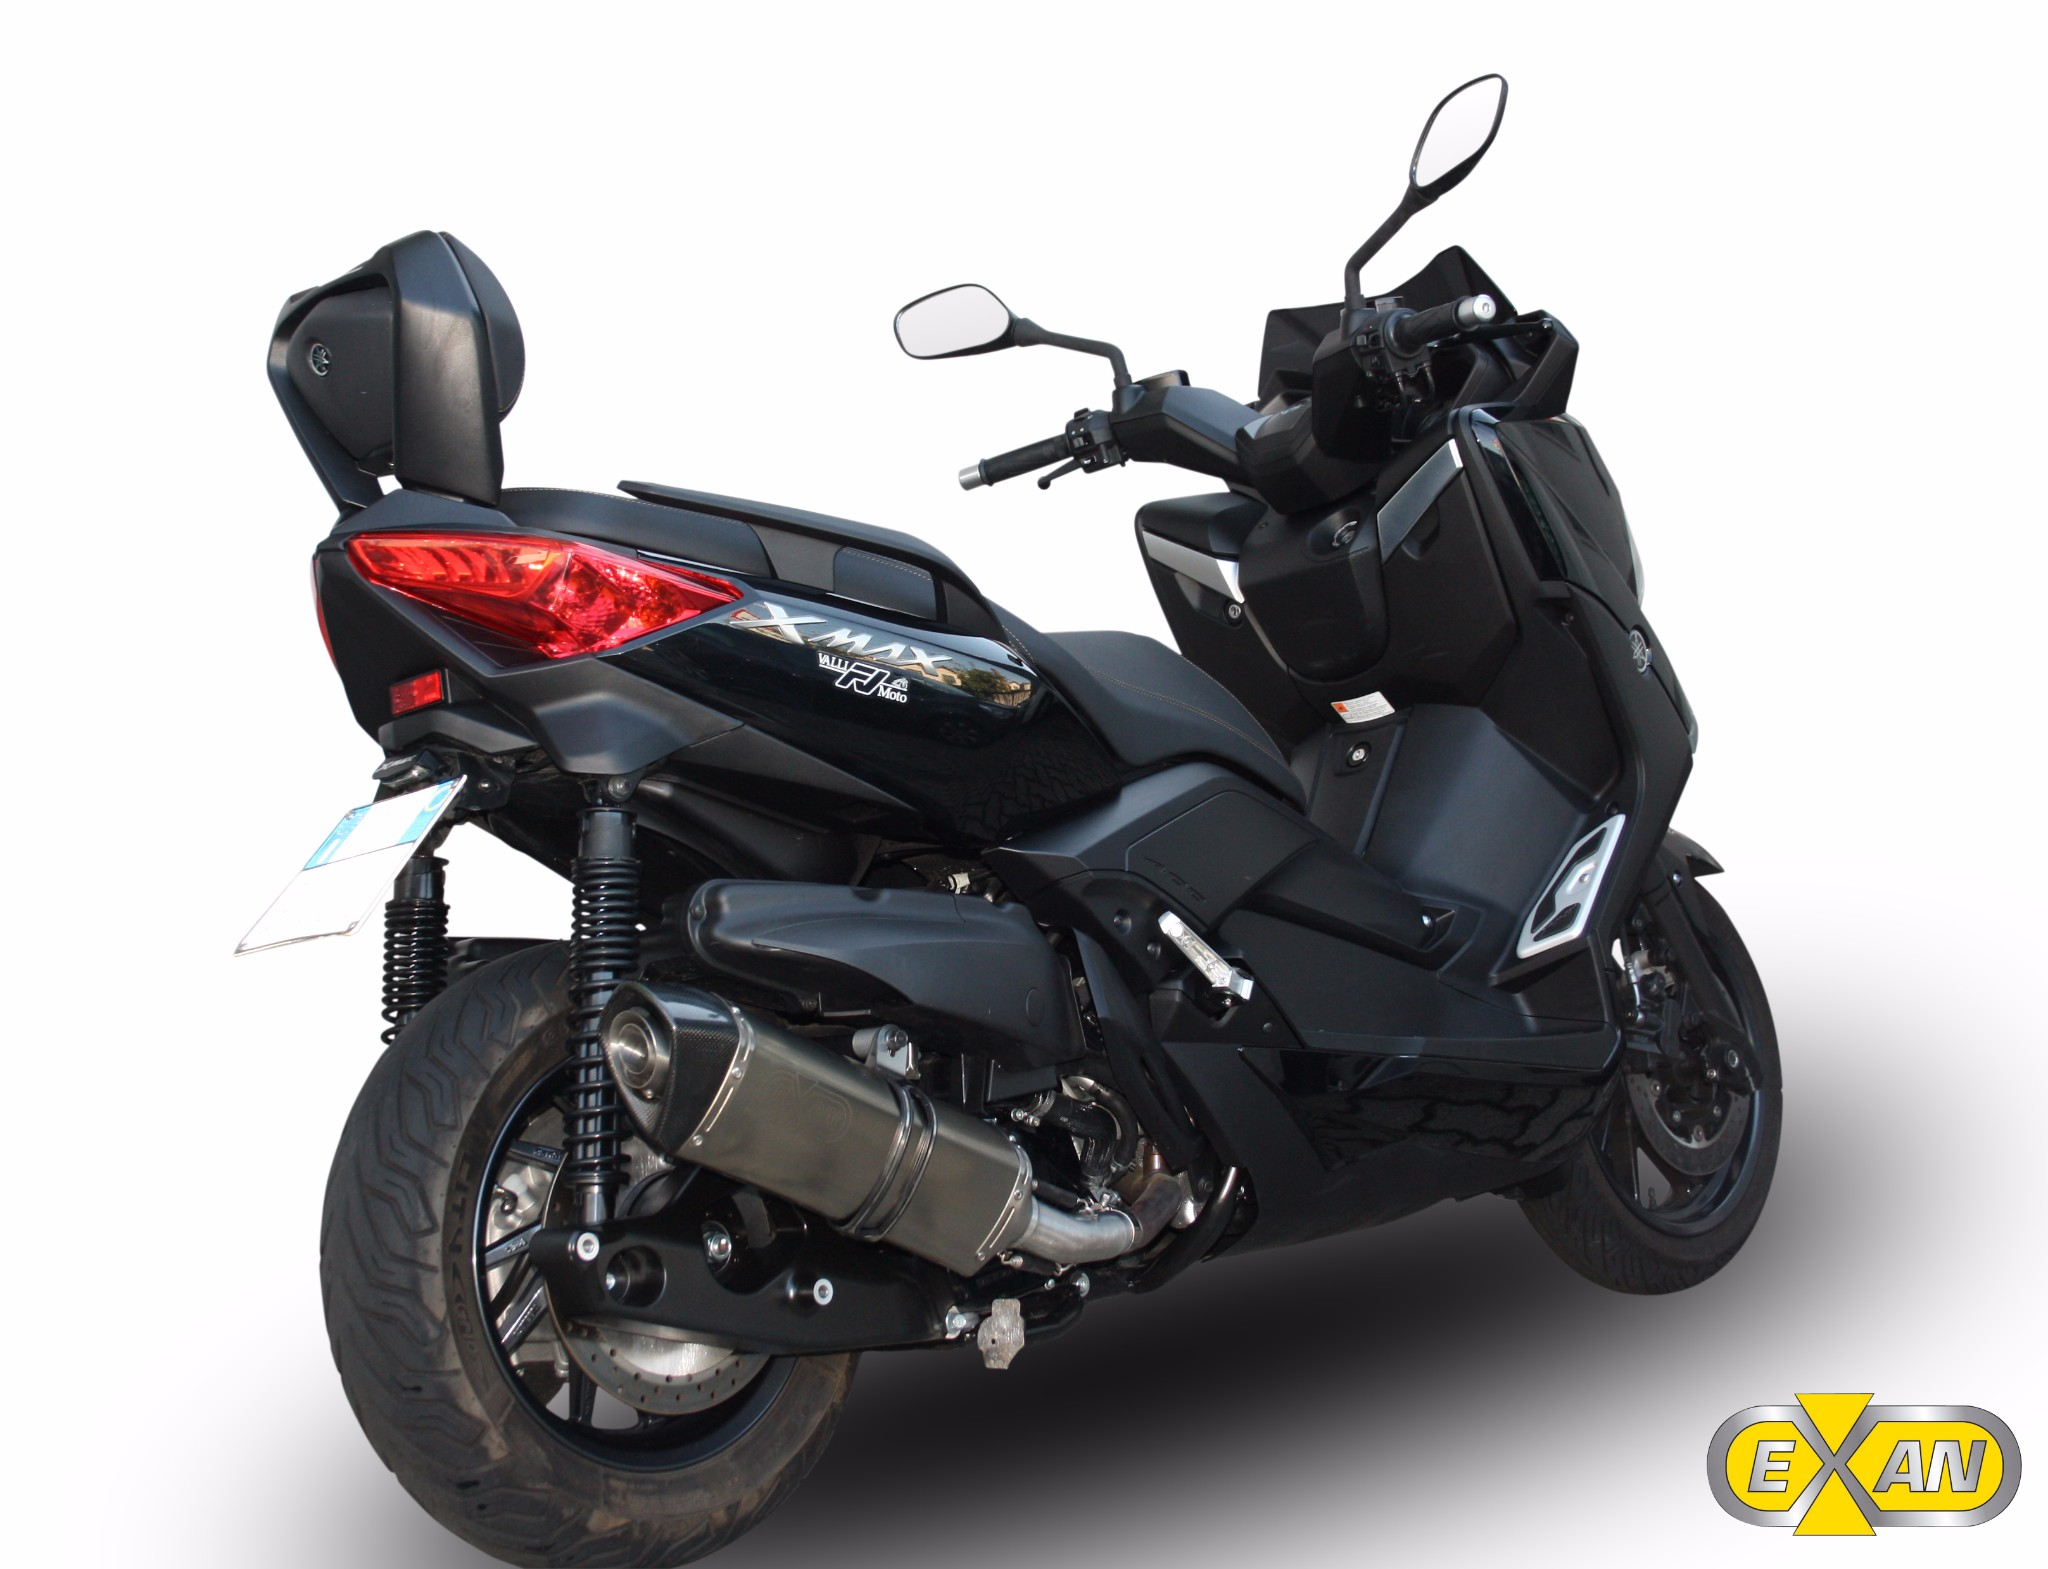 yamaha xmax x max 400 exan exhaust silencer oval x black. Black Bedroom Furniture Sets. Home Design Ideas